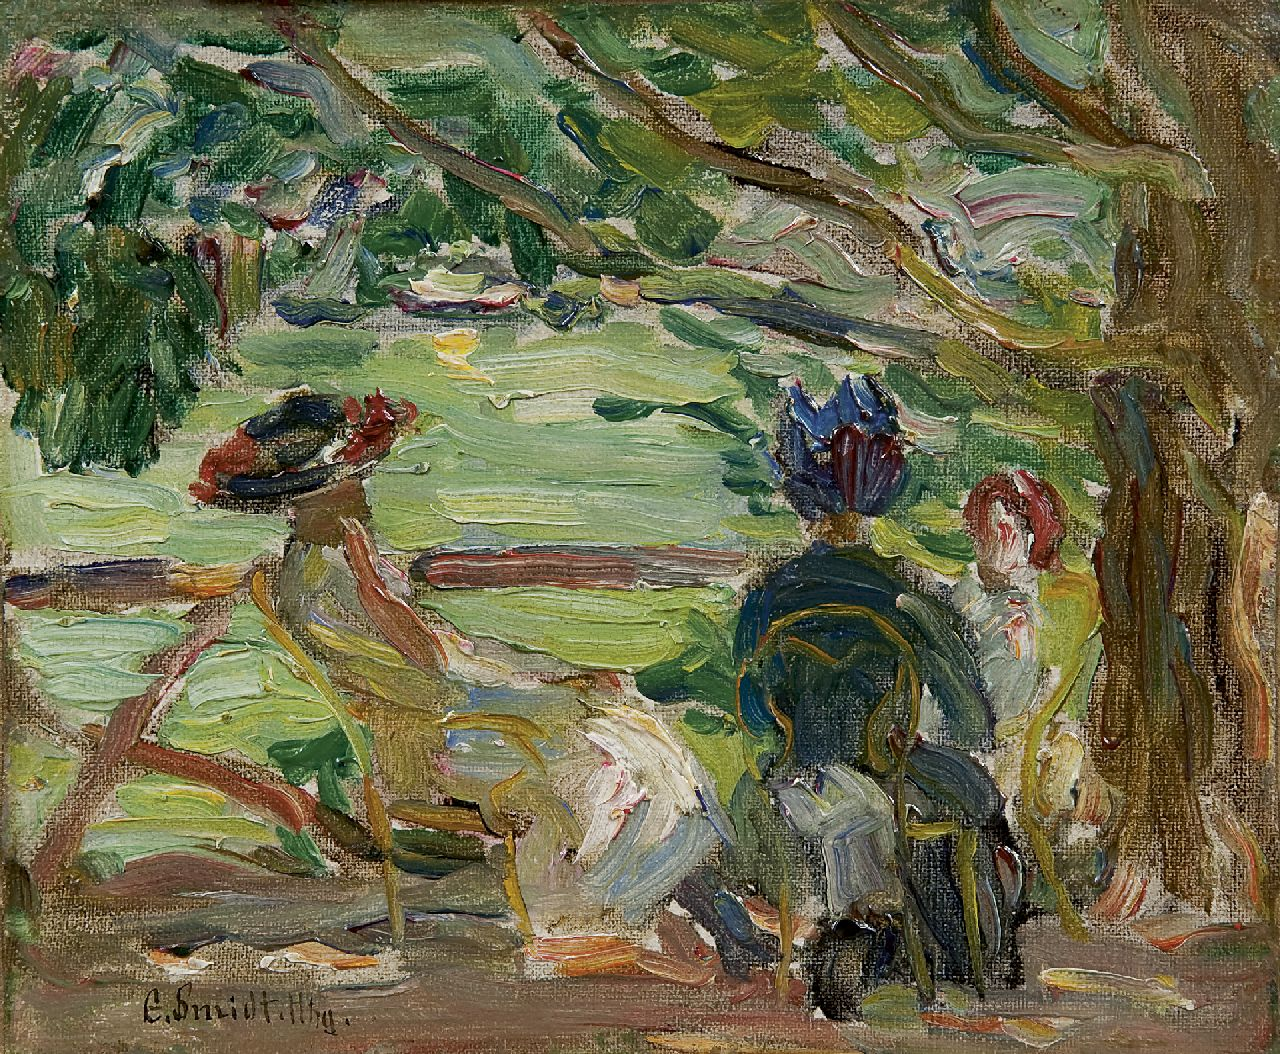 Emil Leonhard Smidt | A summer day in the garden, oil on canvas laid down on board, 15.0 x 18.3 cm, signed l.l.